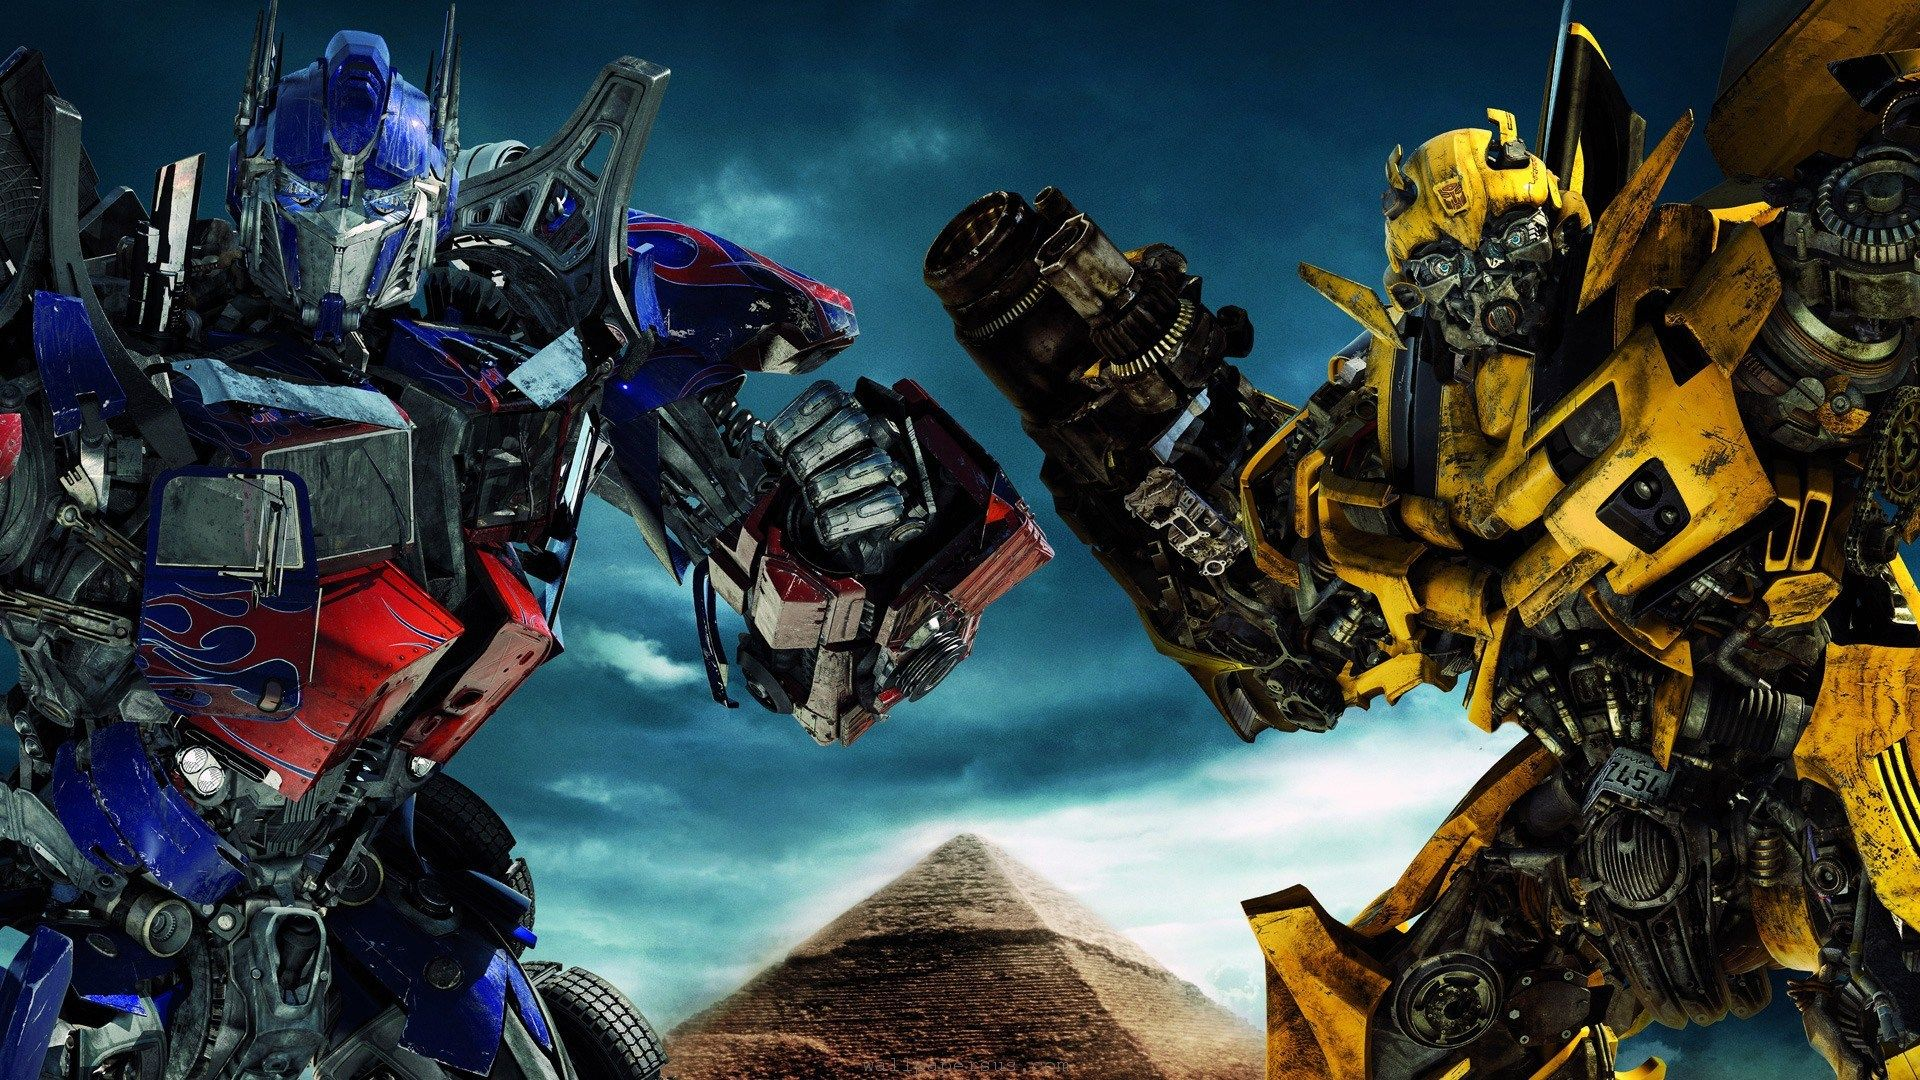 transformers wallpaper for desktop background | movies & casts